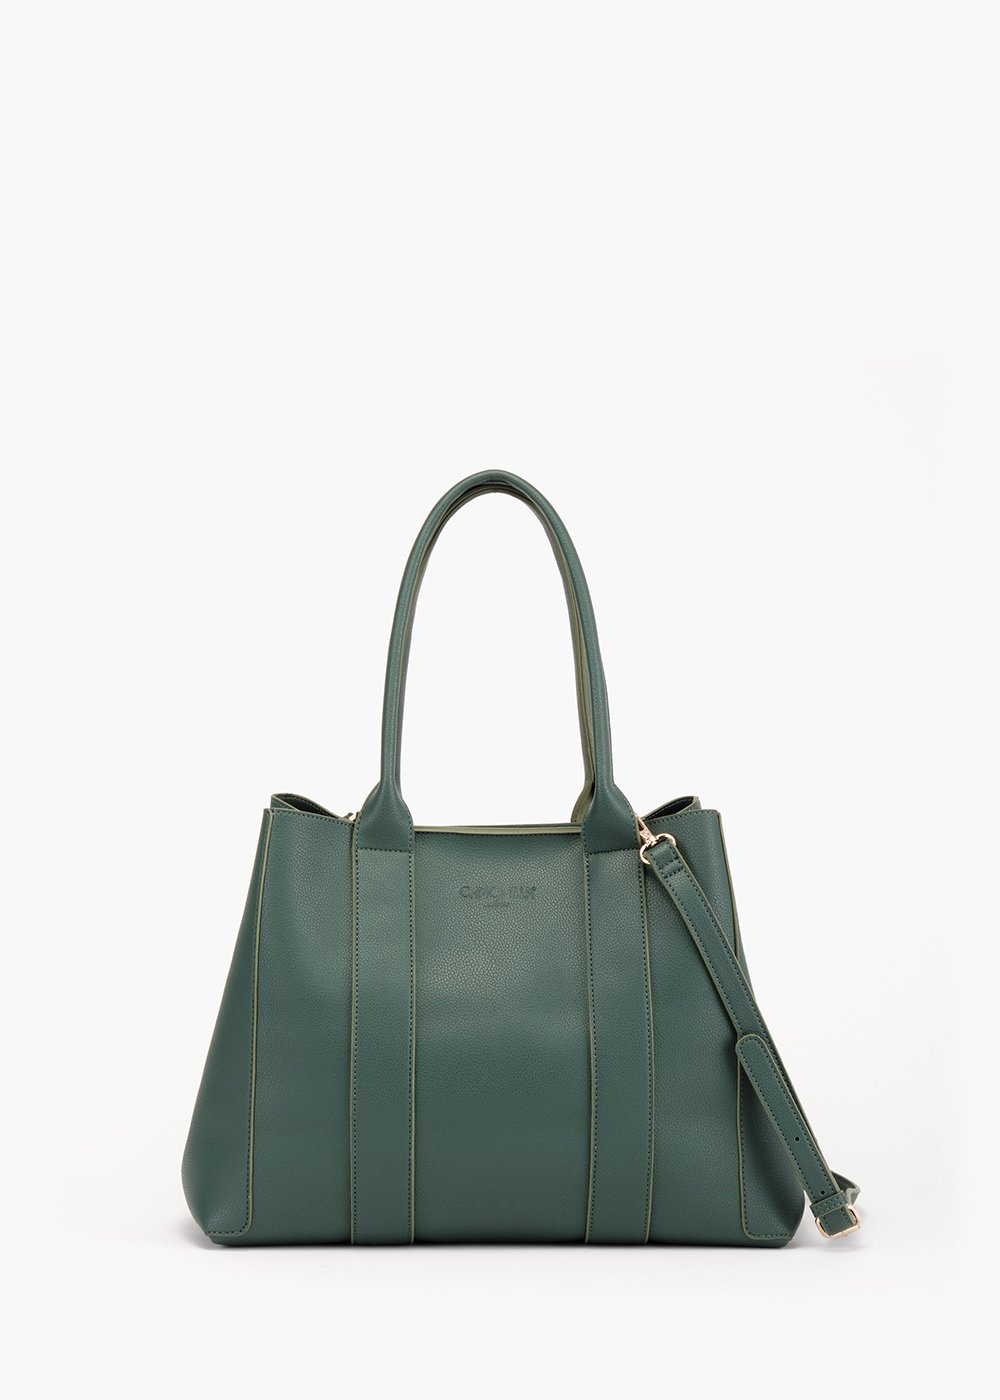 Barly shopping bag in unlined eco leathe - Woman